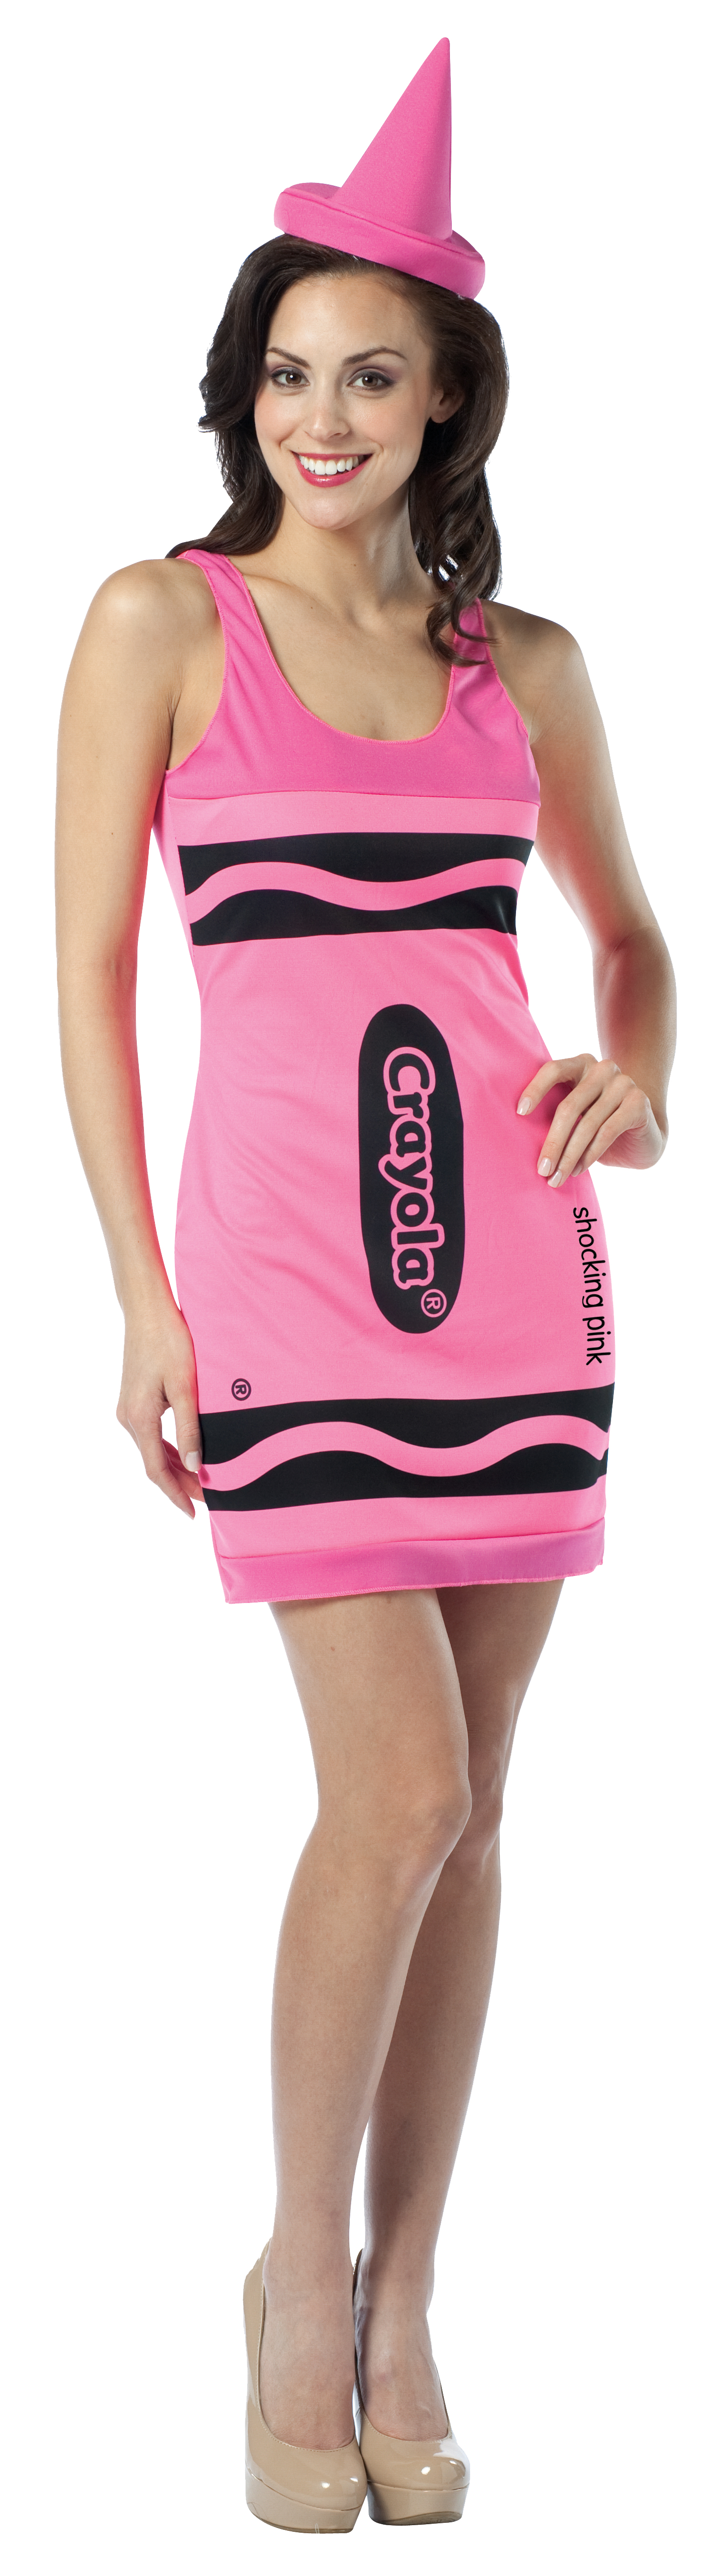 Crayola Crayon Fancy Dress Plus Size Dressed For Less